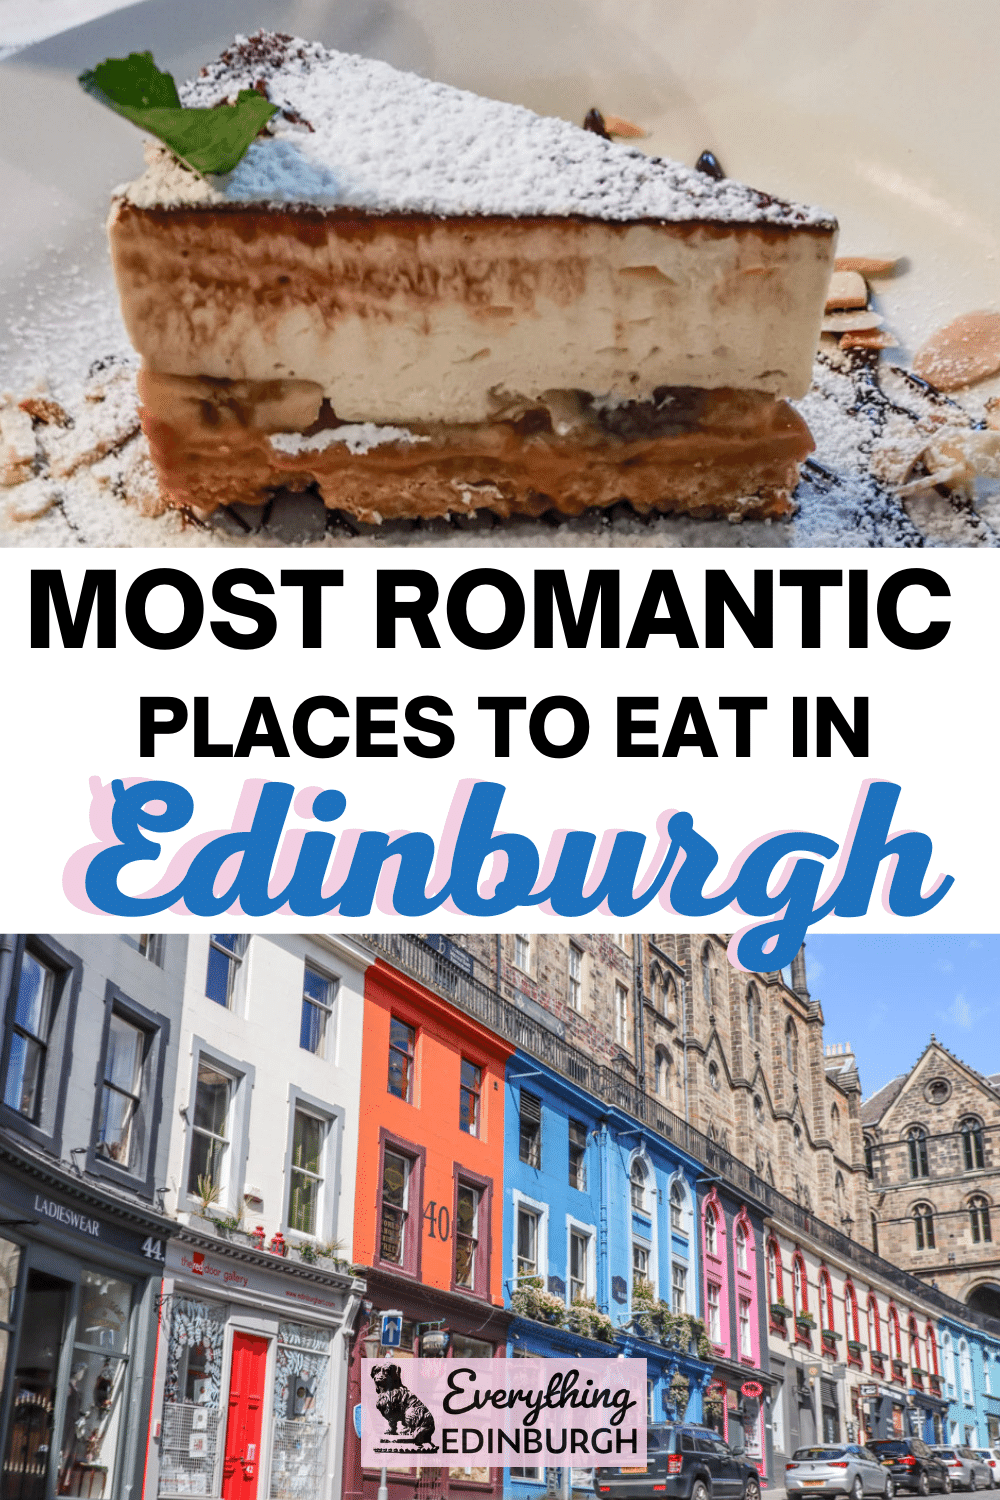 Looking for the best Edinburgh restaurants? This guide details the most romantic restaurants in Edinburgh for couples looking to book a meal for a special occasion or just because! From Edinburgh Castle views to fine dining, atmospheric settings to affordable date night meals. Click to find out more.